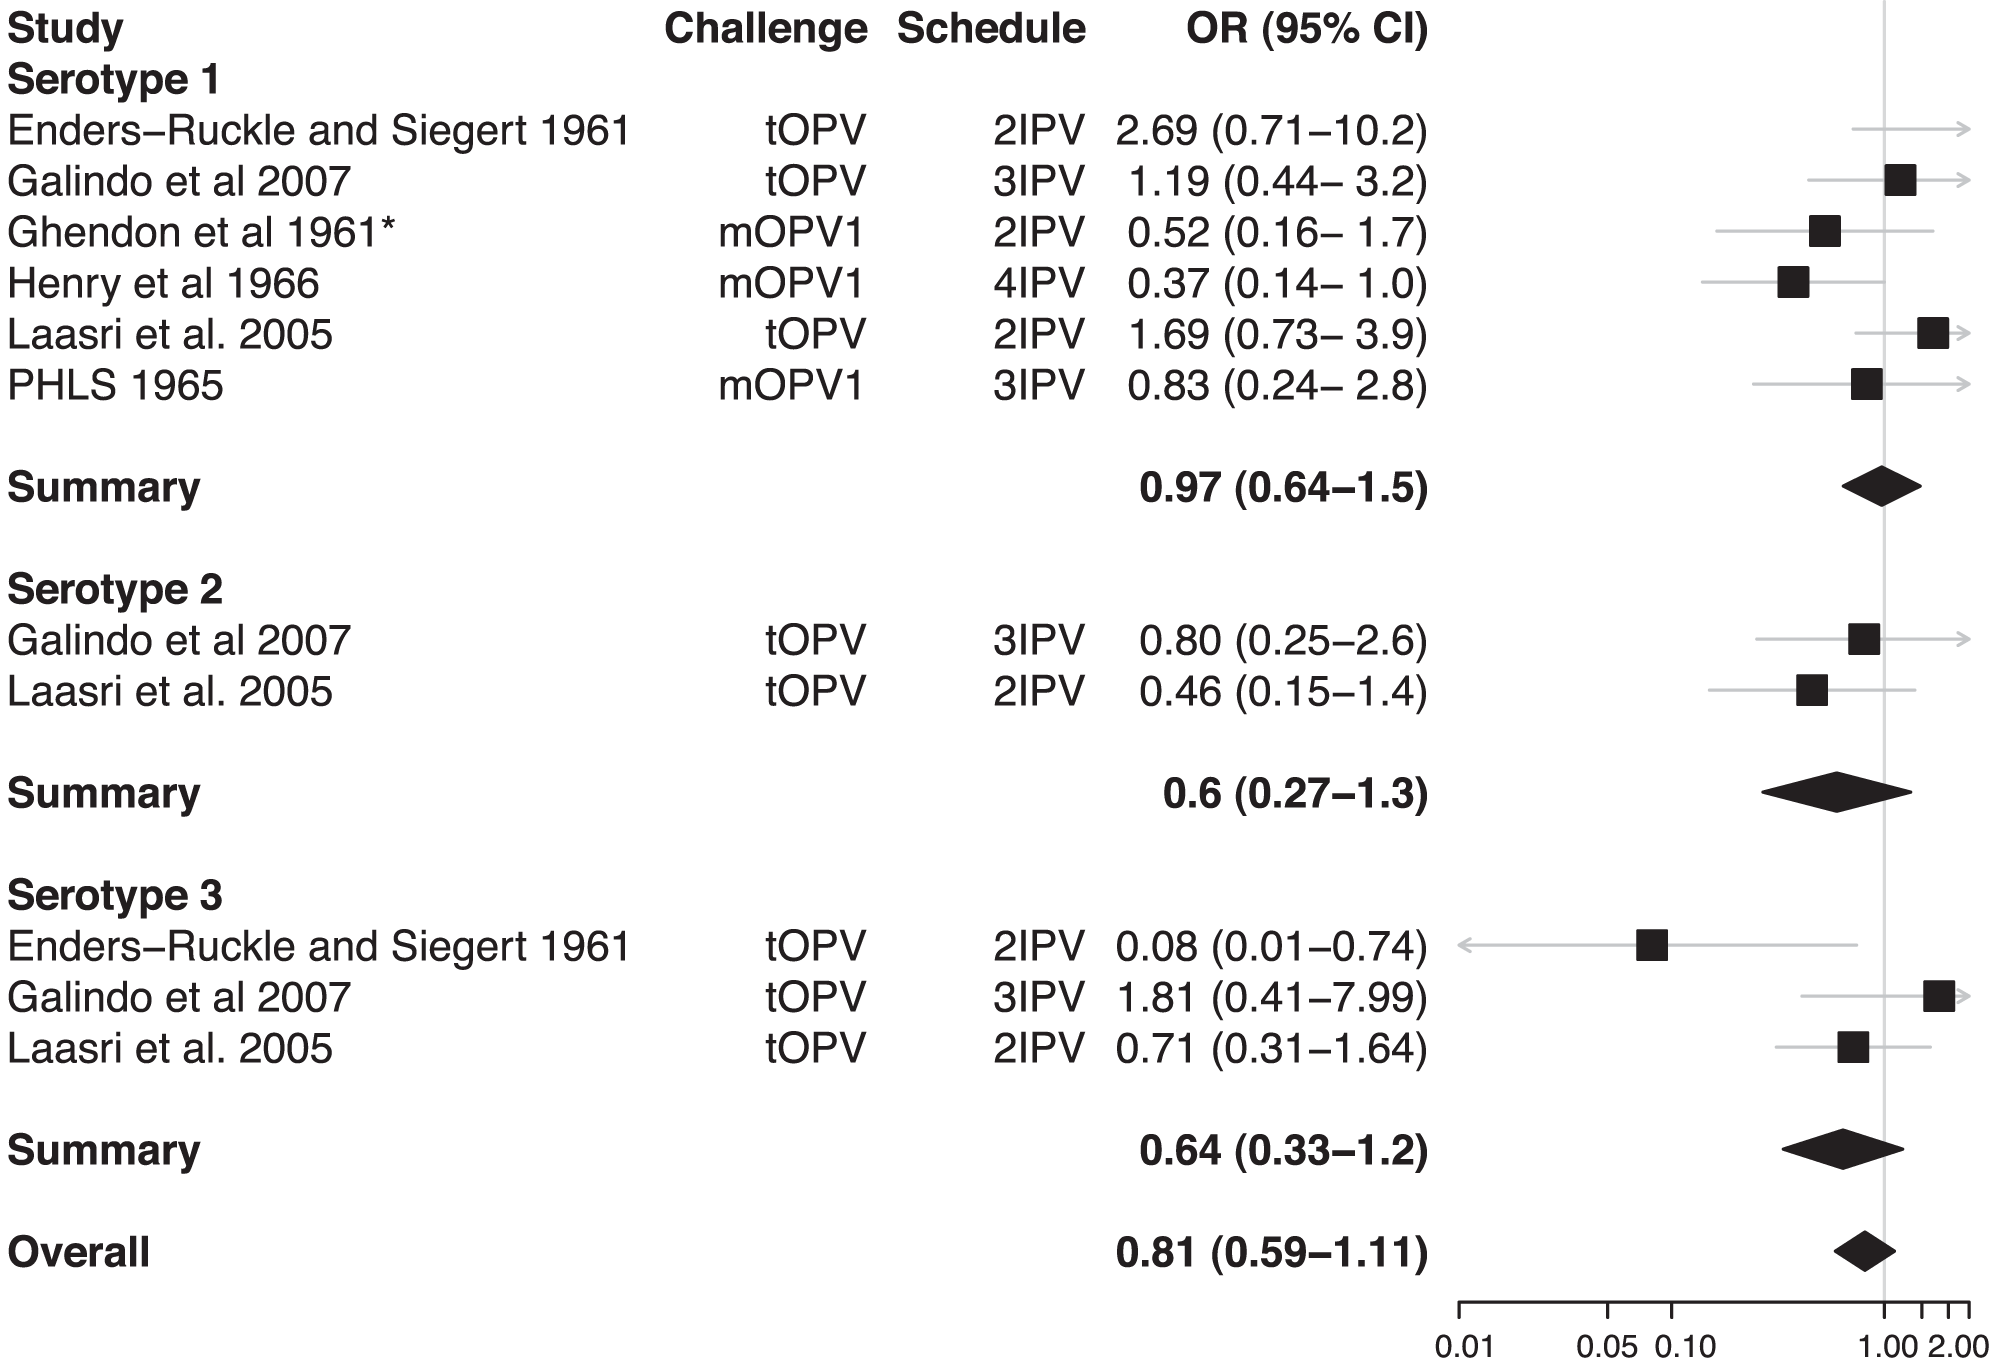 Relative odds of shedding vaccine poliovirus after challenge among individuals vaccinated with IPV compared with unvaccinated individuals.